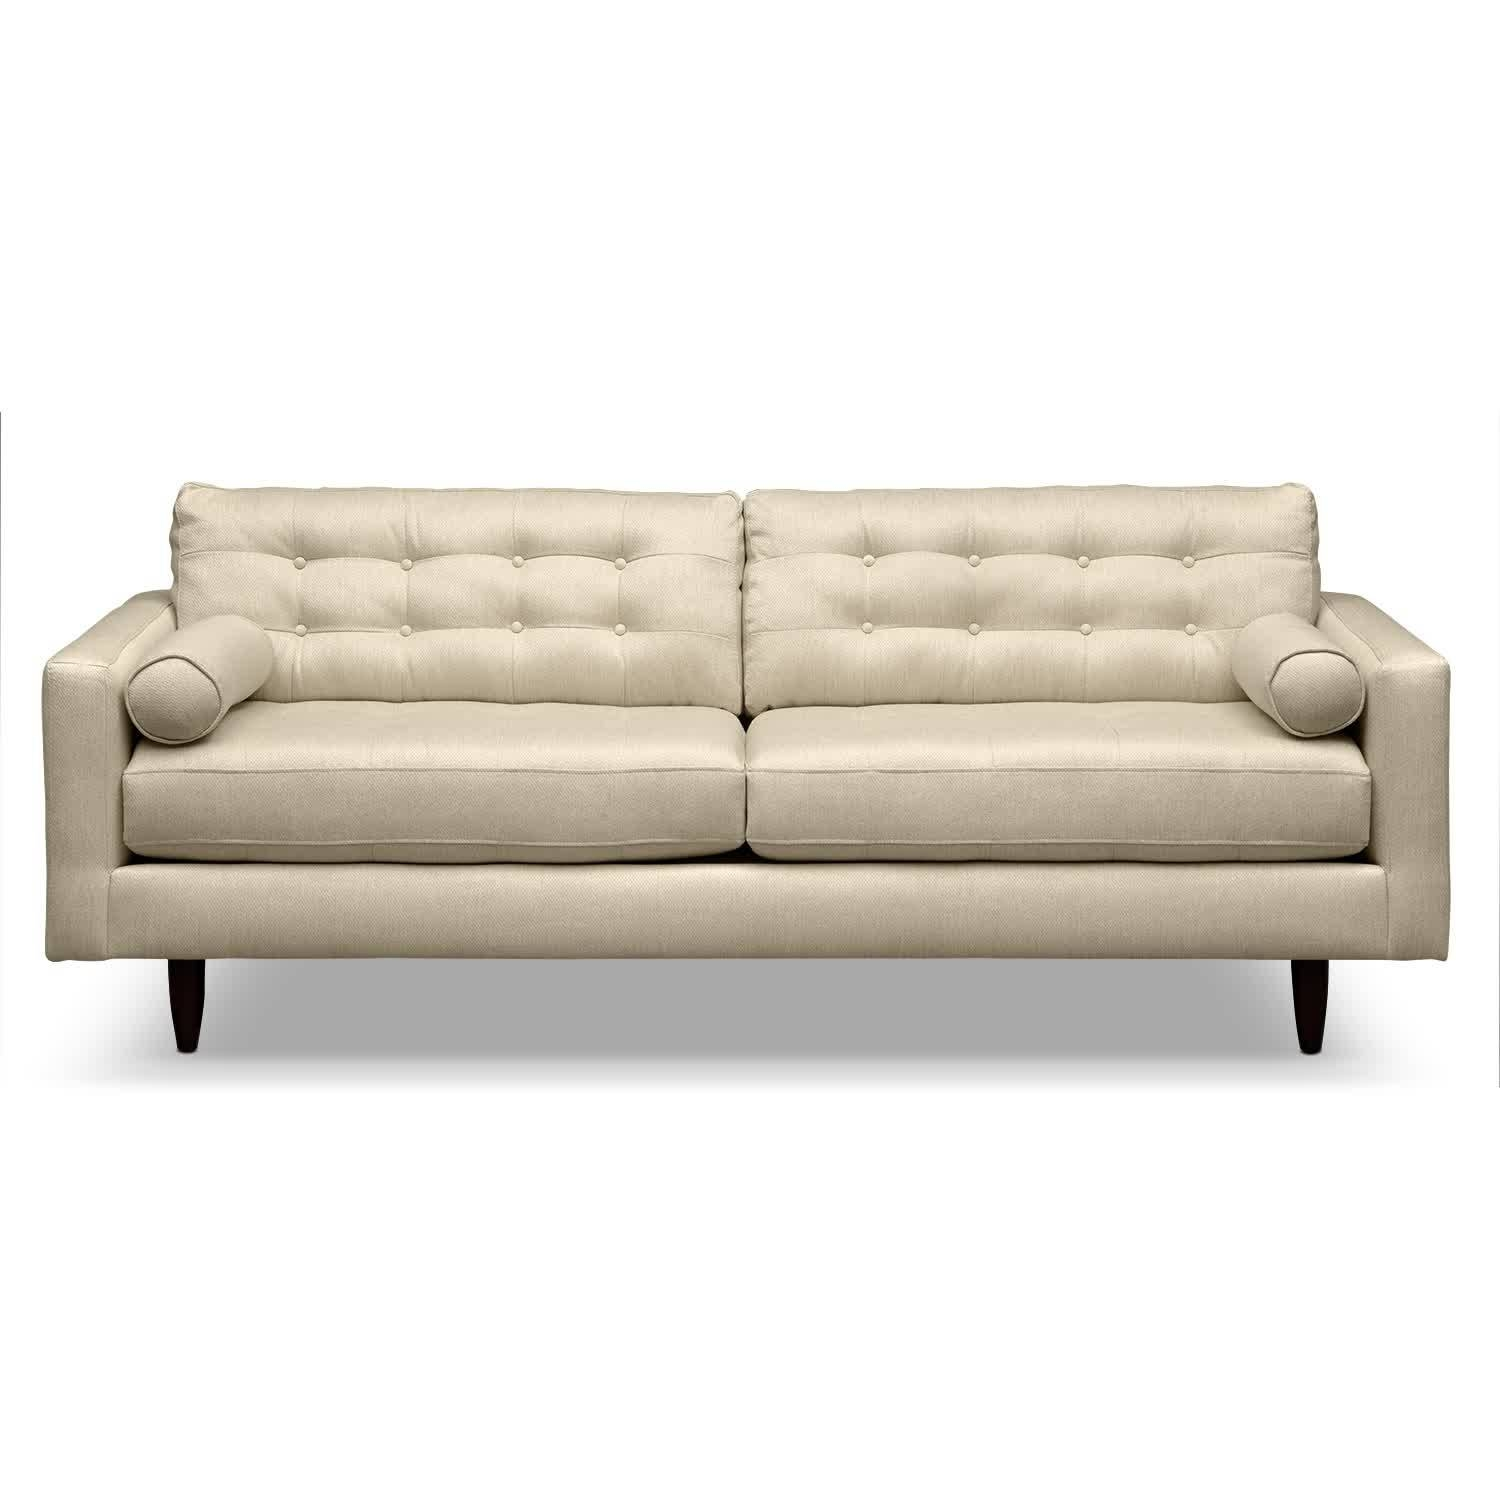 Sofa: Cool Couches For Provides A Warm To Comfortable Feel And Low in Cheap Tufted Sofas (Image 9 of 30)